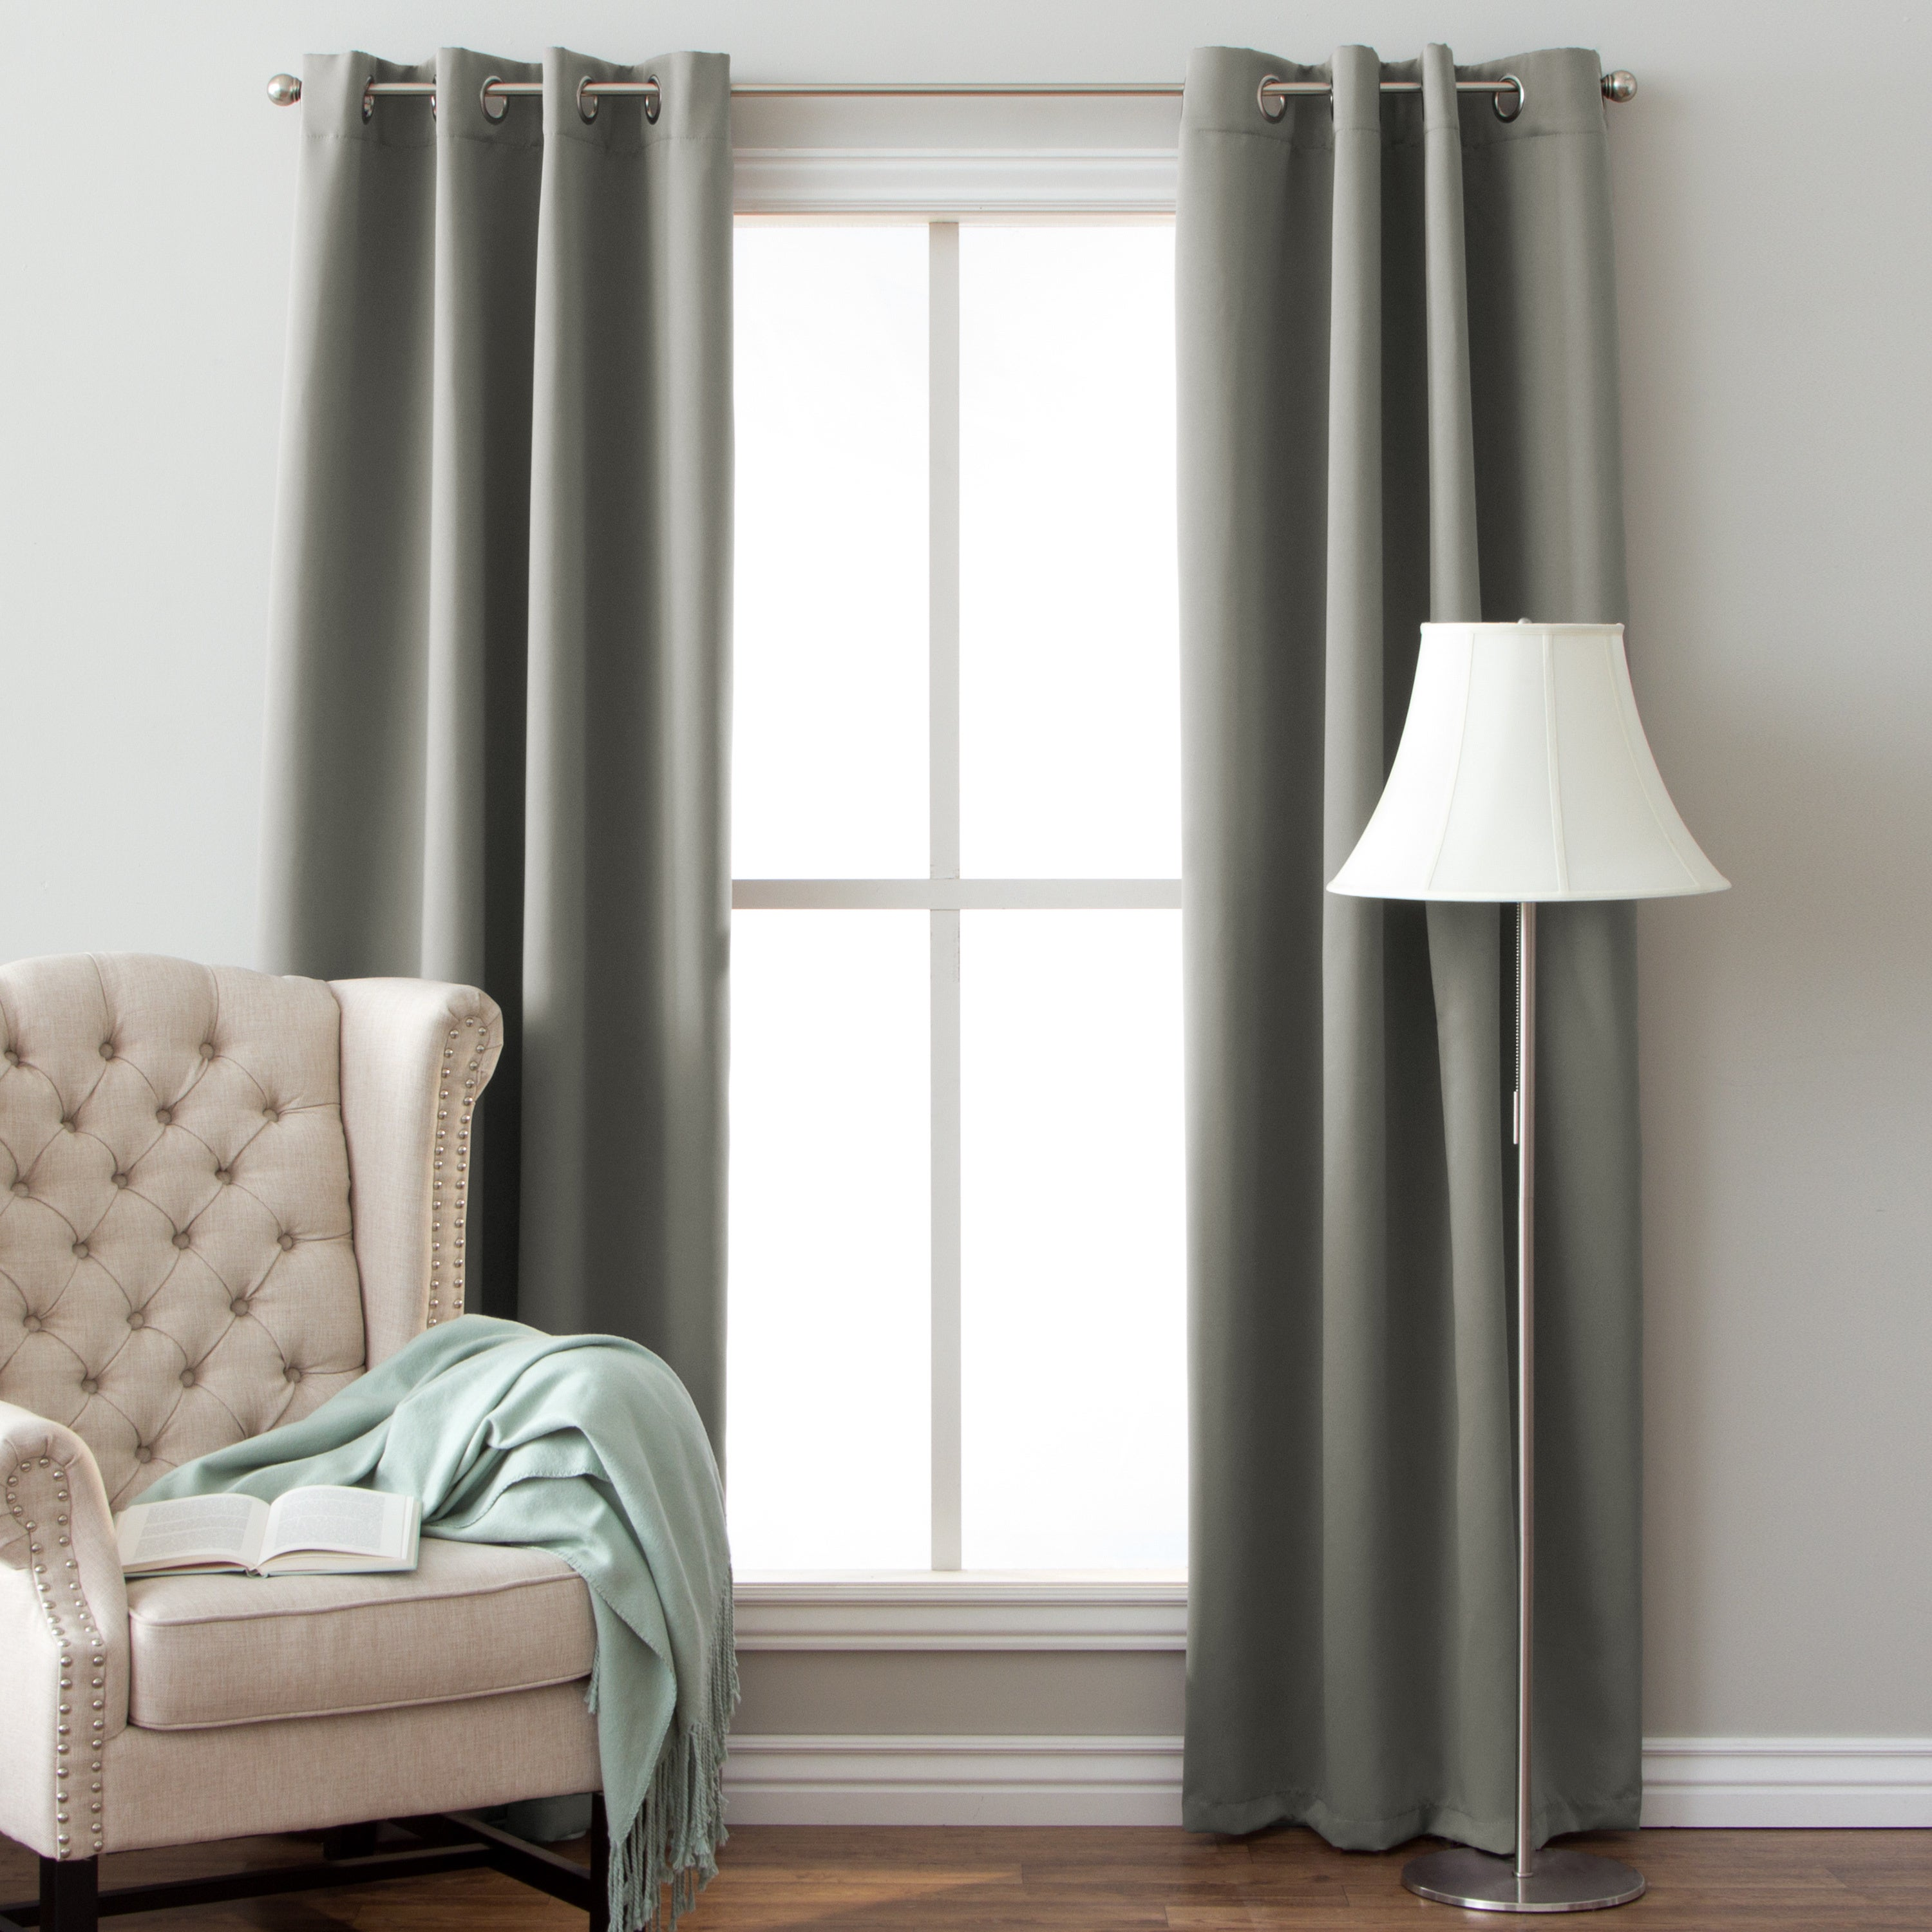 Arlo Blinds 96-inch Insulated Grommet Blackout Curtain Pa...